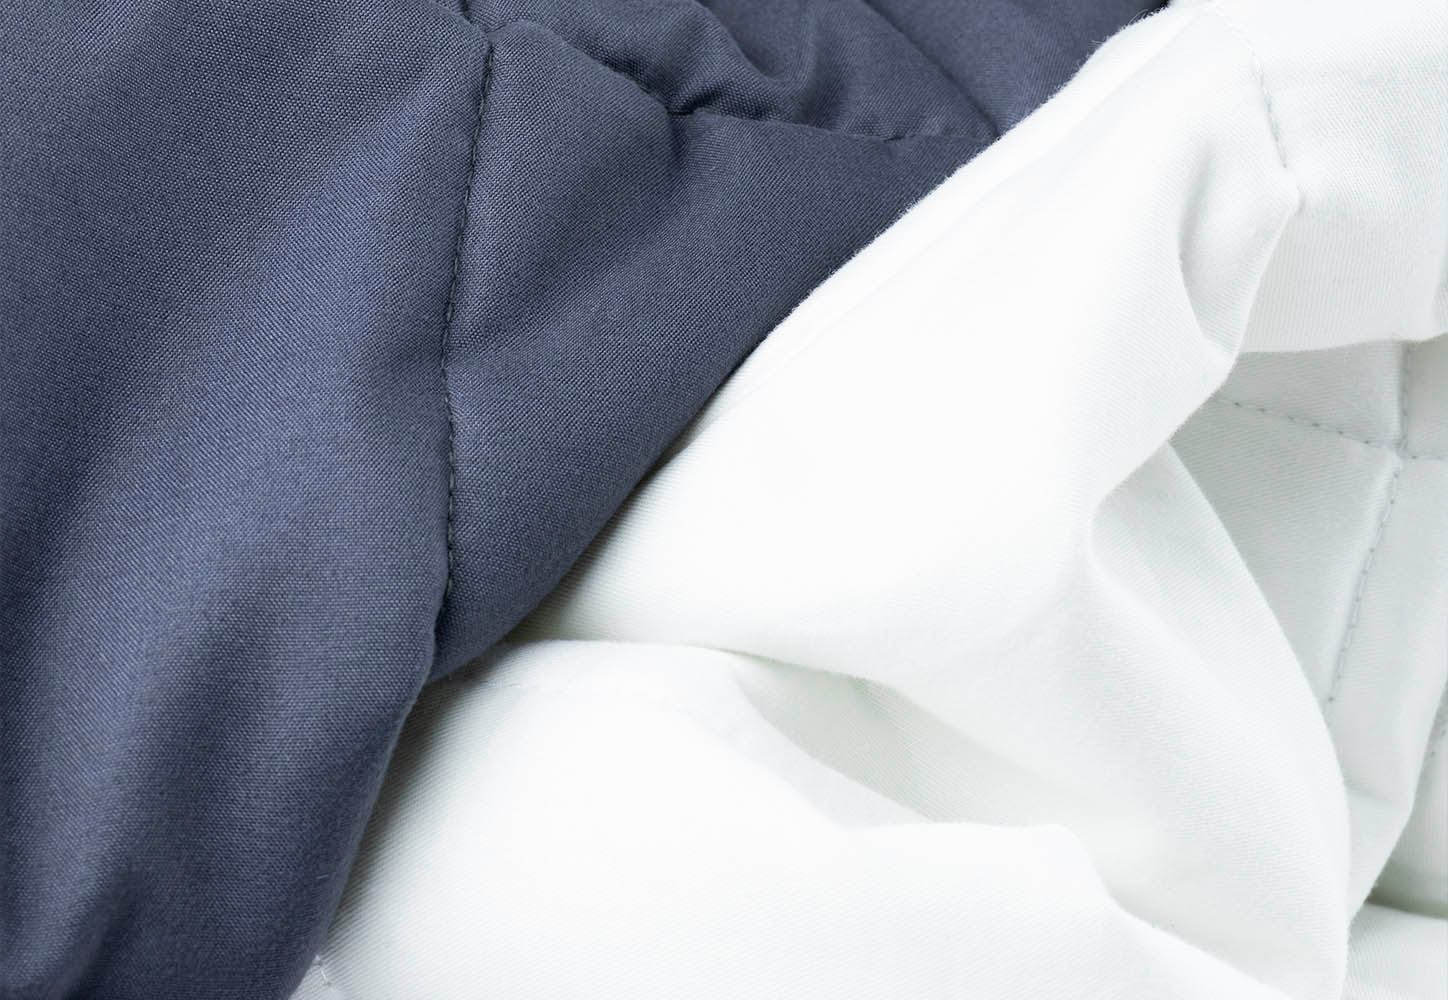 How to choose a weighted blanket?